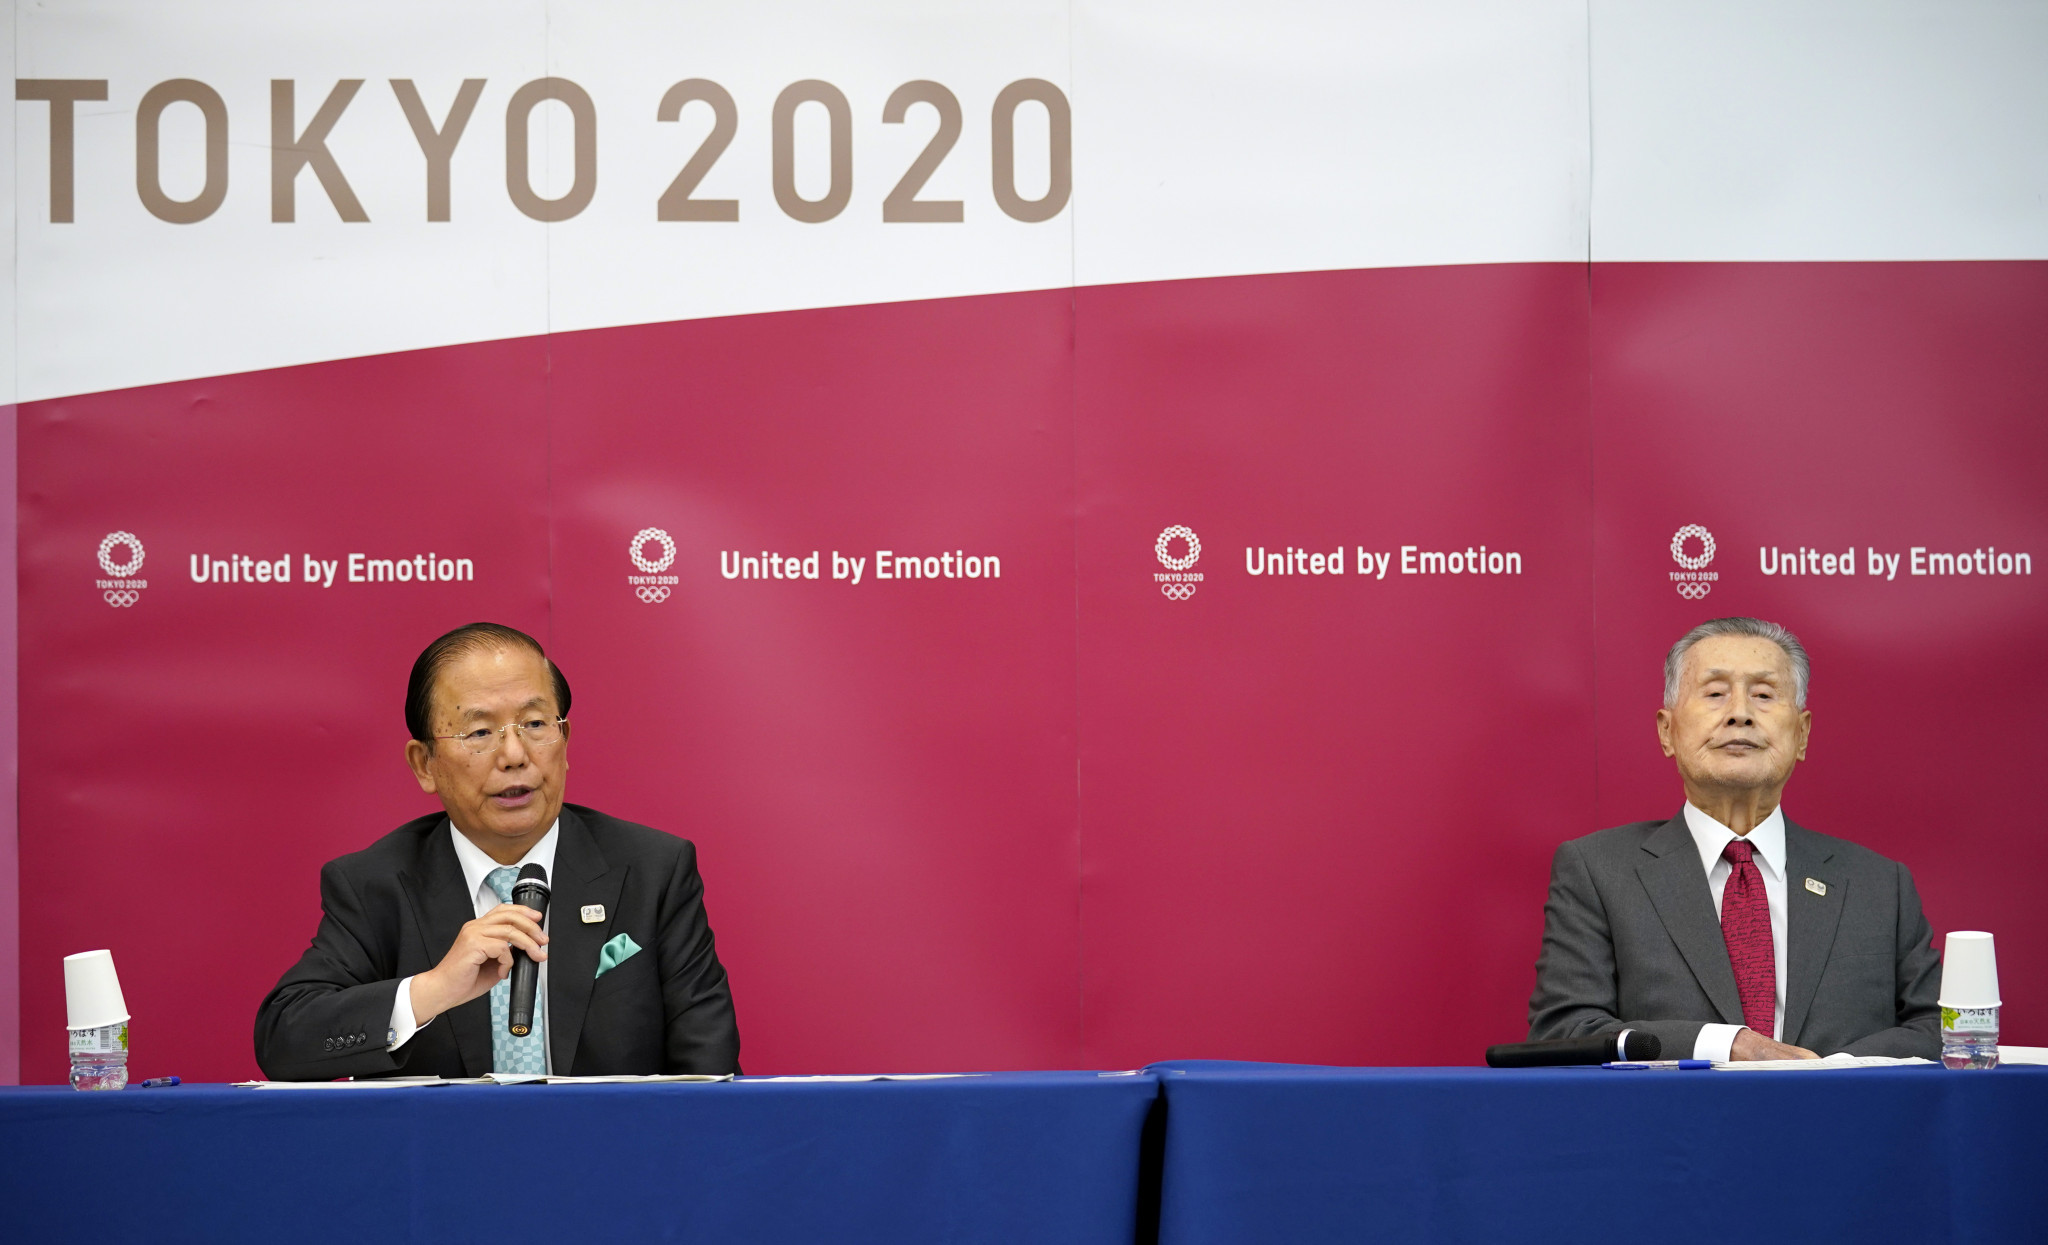 Tokyo 2020 will give an update on progress towards the postponed Olympic Games ©Getty Images